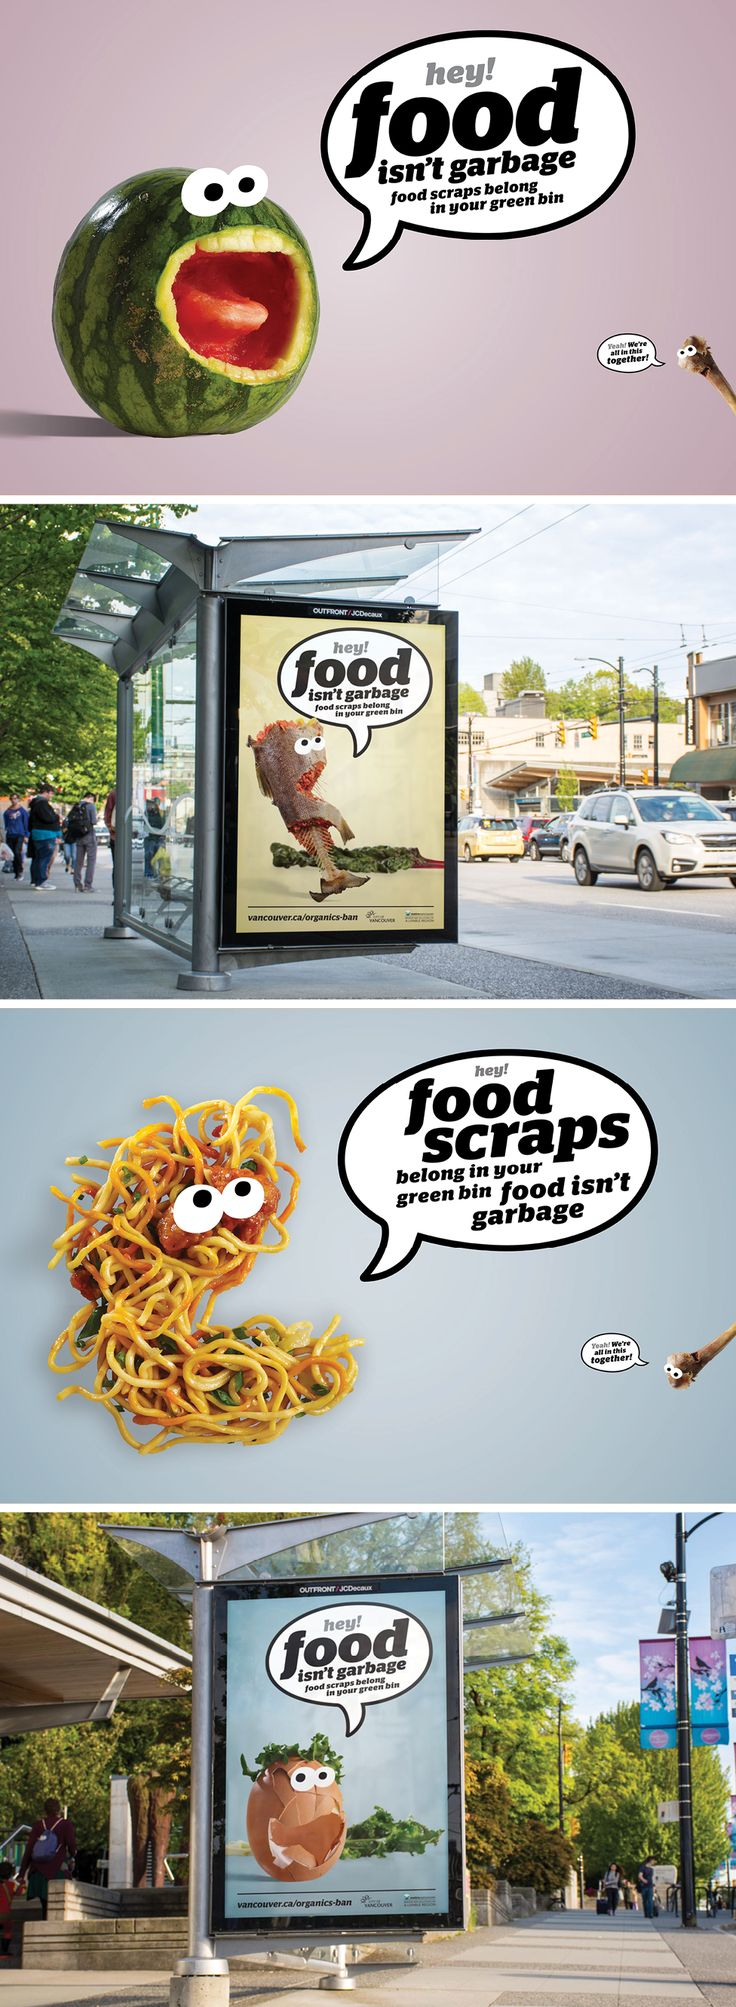 Food isn't garbage. A organics recycling advertising campaign for Metro Vancouver featuring talking food and humour to reduce waste. | Ion Brand Design #inspiration #green #campaign #advertising #design #transit #zerowaste